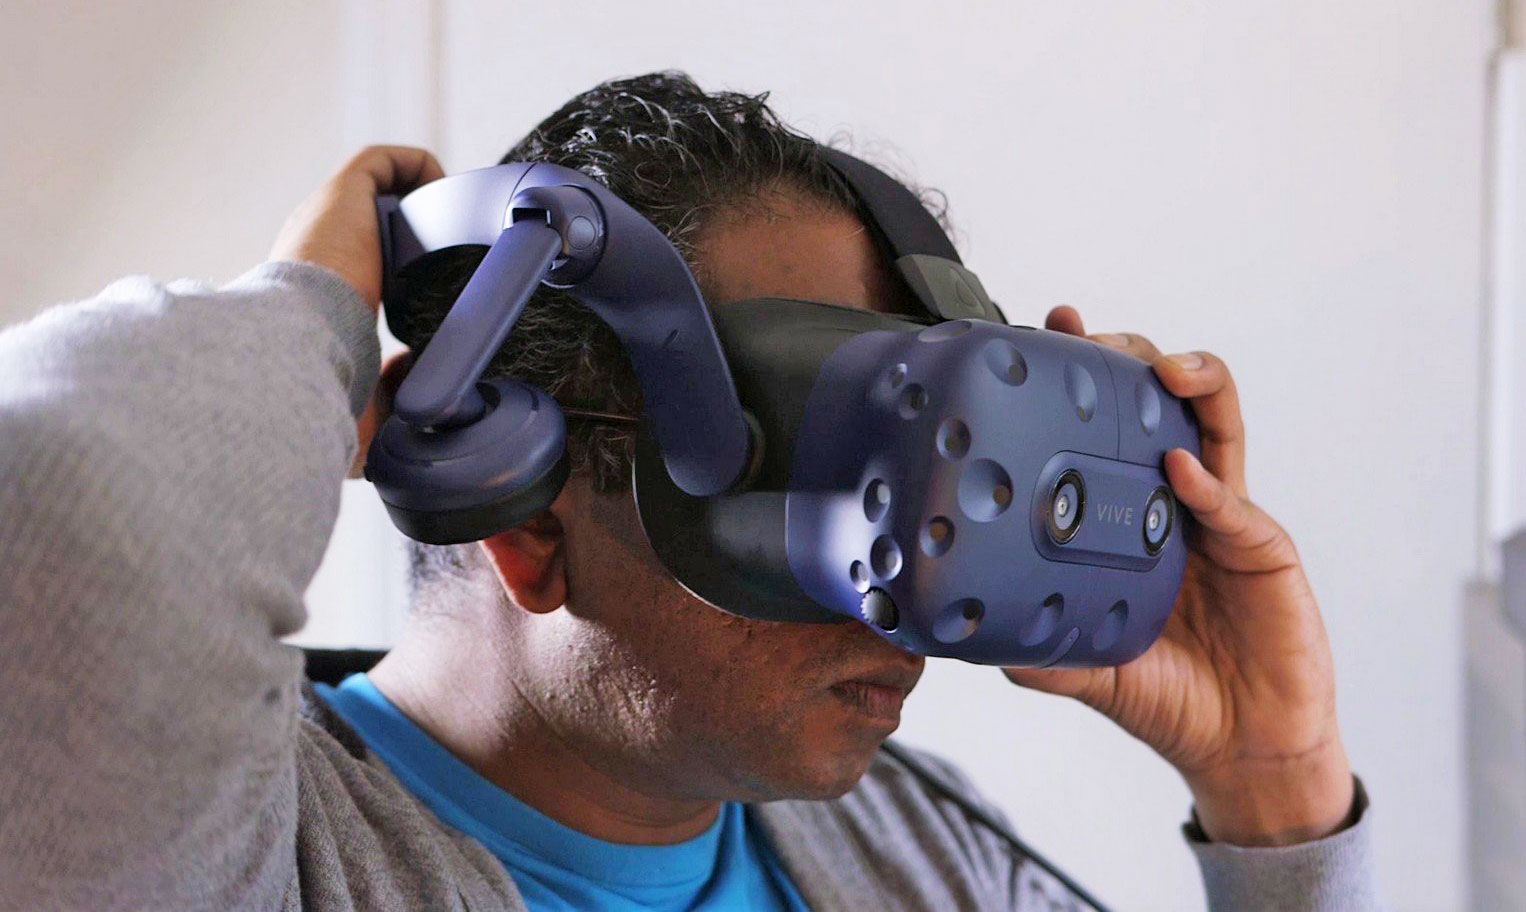 HTC Launches Vive Pro Starter Kit